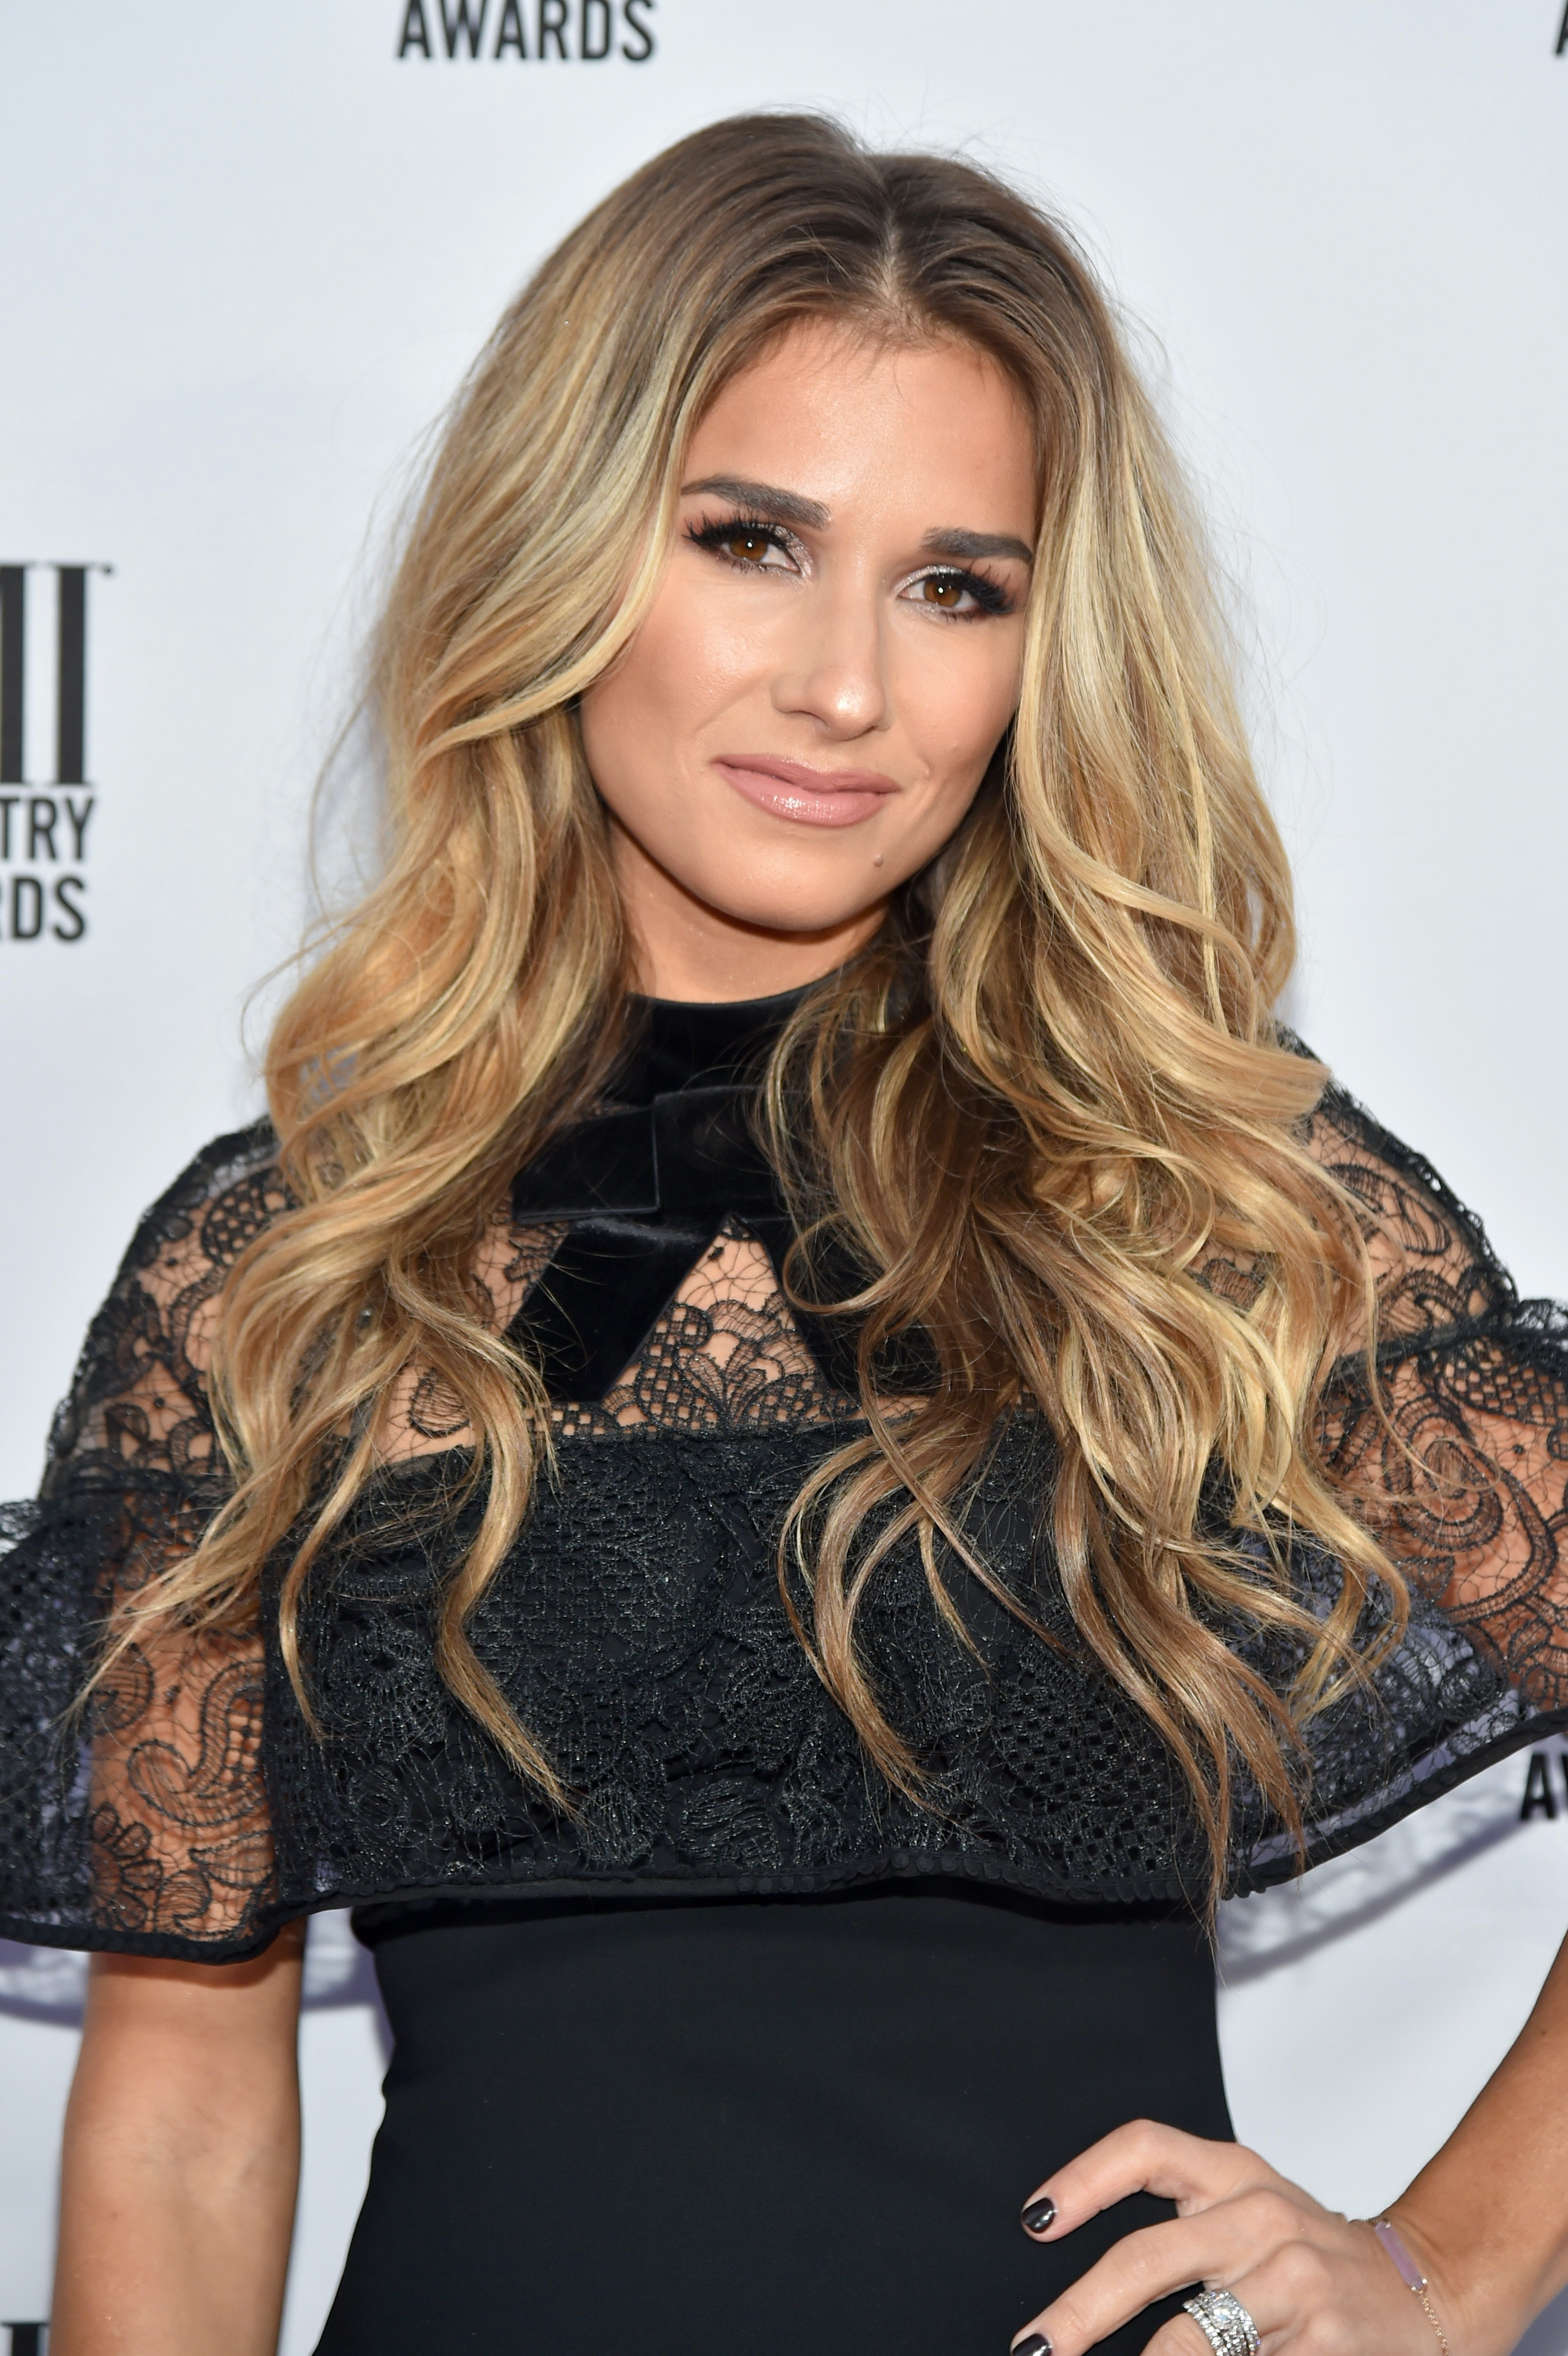 Where To Buy The Jessie James Decker X Fave4hair Curling Iron For